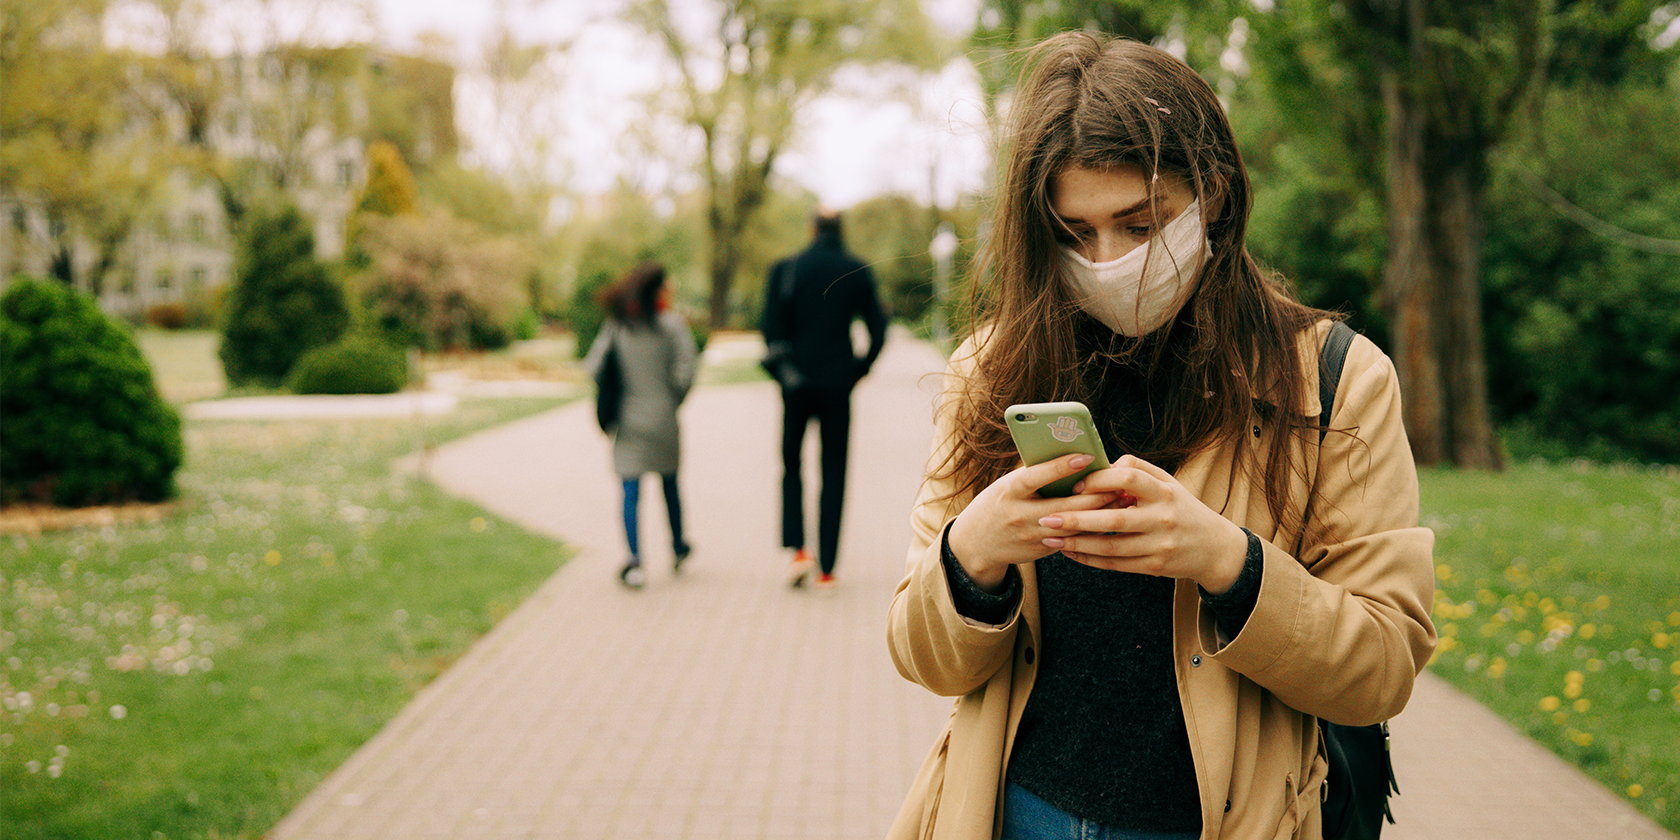 5 Ways Your iPhone Can Help You Combat COVID-19